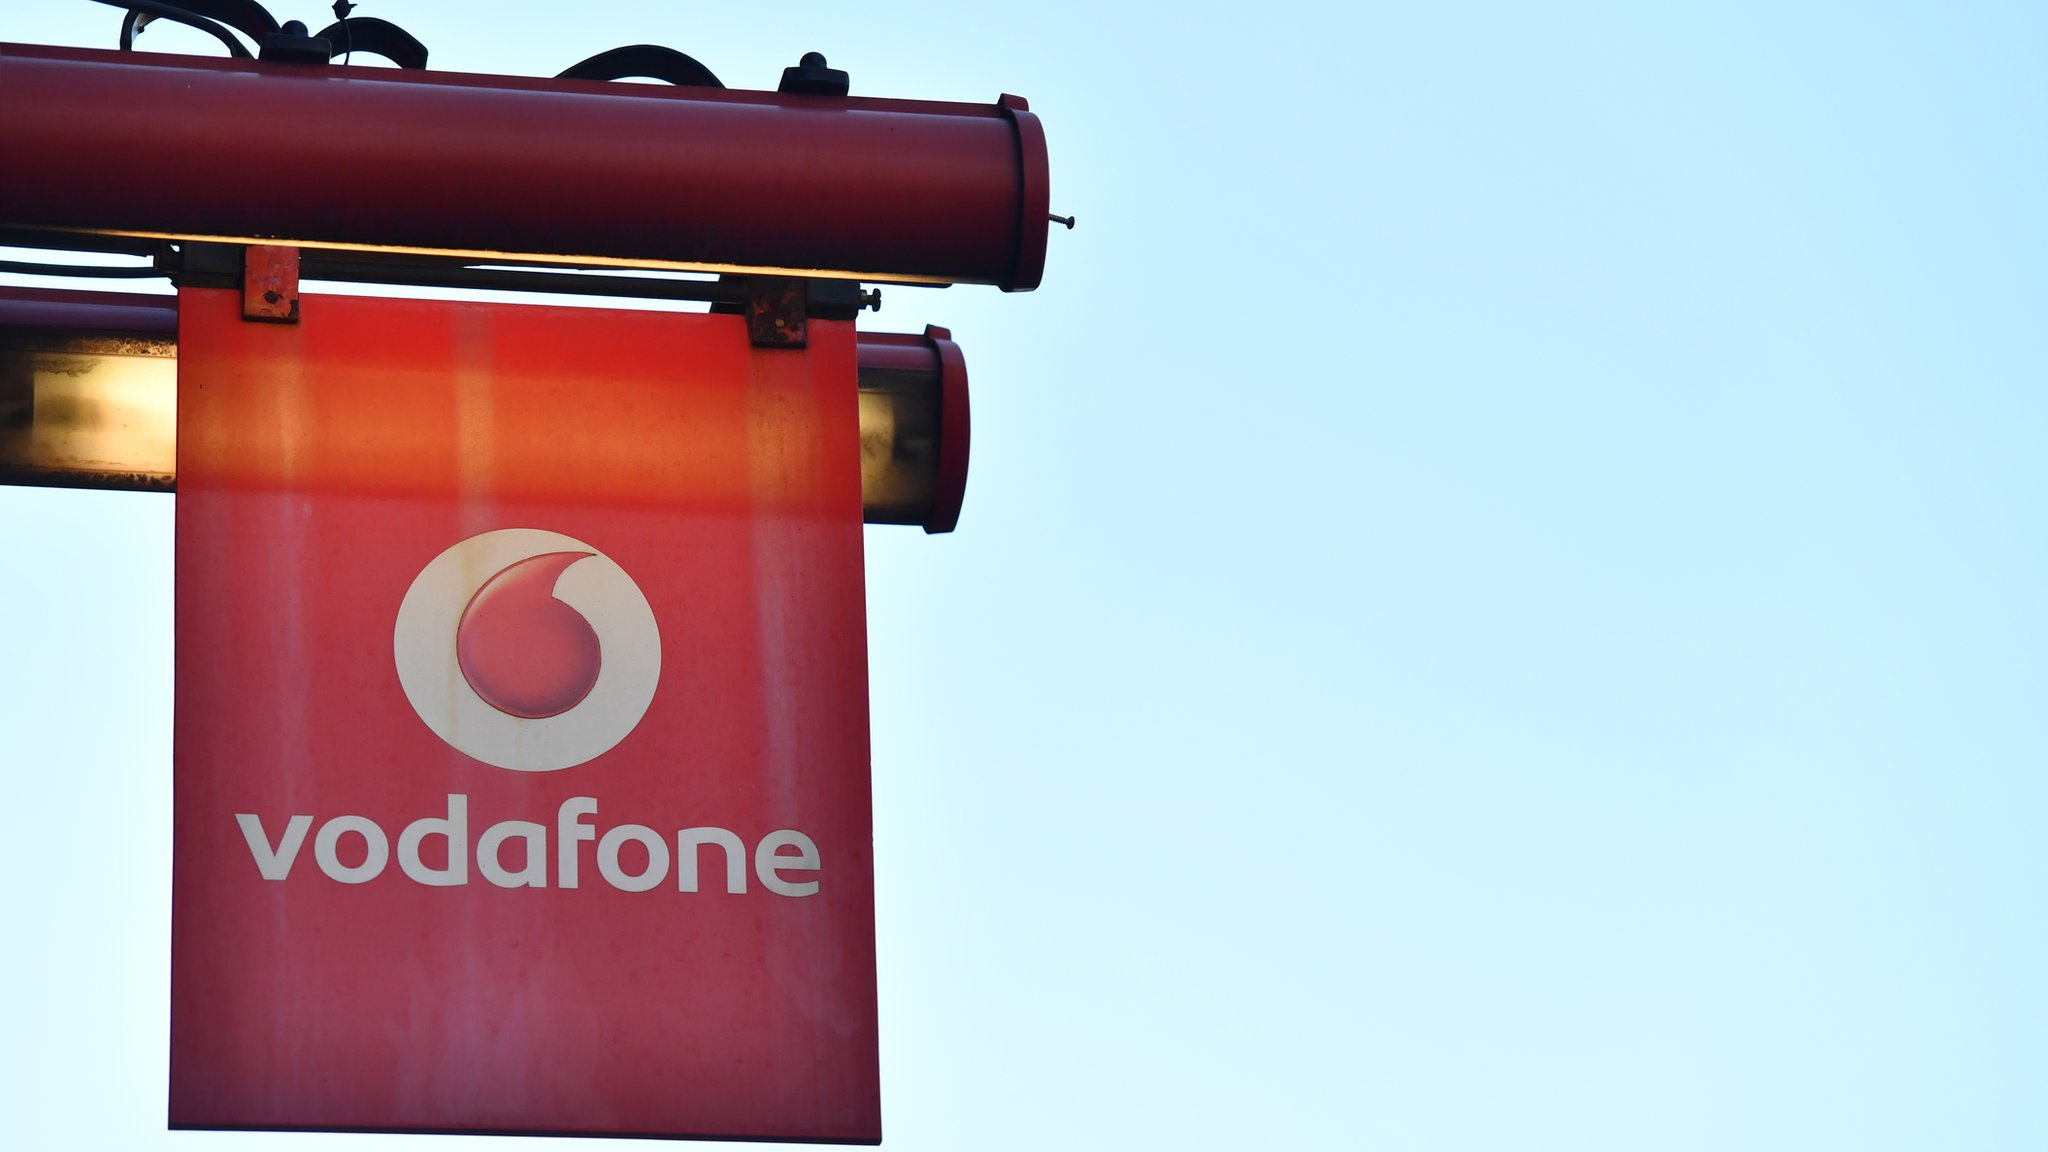 Vodafone rated worst mobile provider by Which? survey